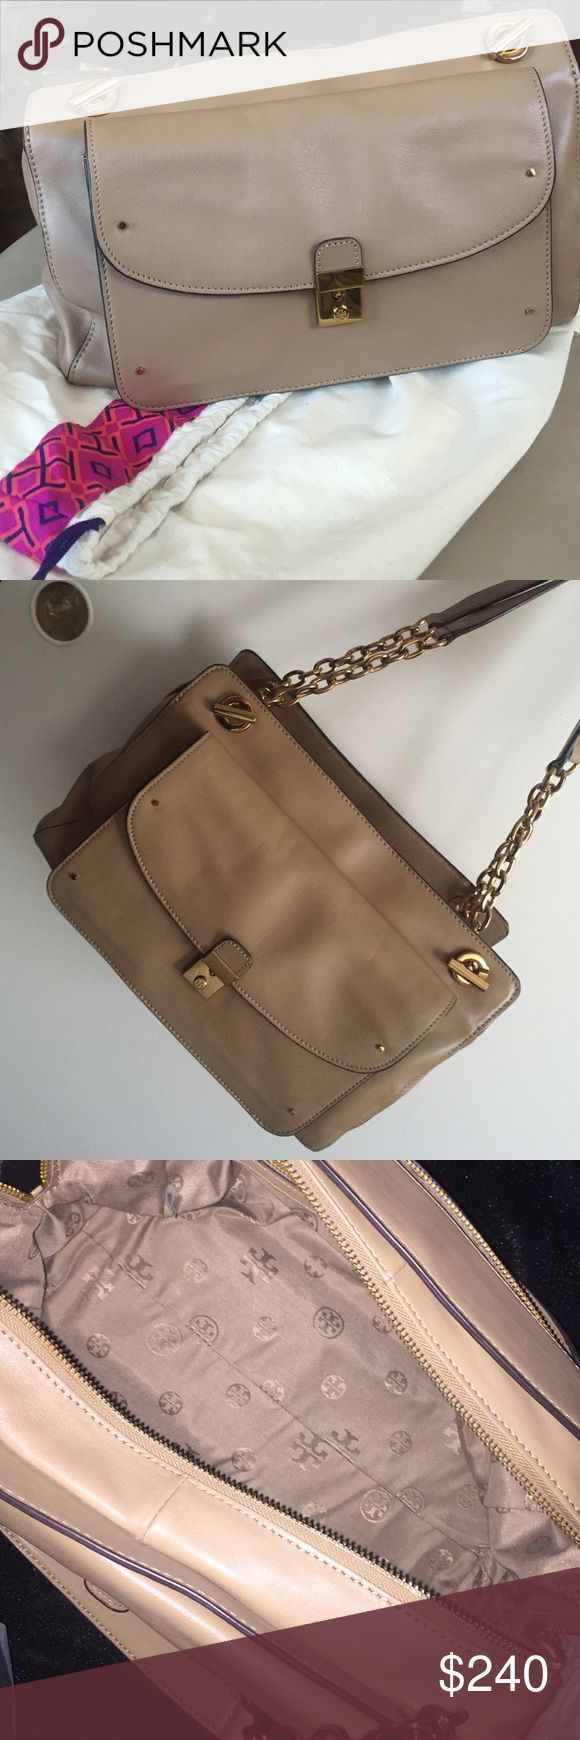 TORY BURCH TAN/GOLD CHAIN PURSE AUTHENTIC. Purchased at south coast plaza in Southern California, Tory Burch boutique. Tory Burch tan and gold chain purse. Medium size. Very good condition. Used twice. Many pockets inside. Comes with Original tags and bag. Tory Burch Bags Shoulder Bags